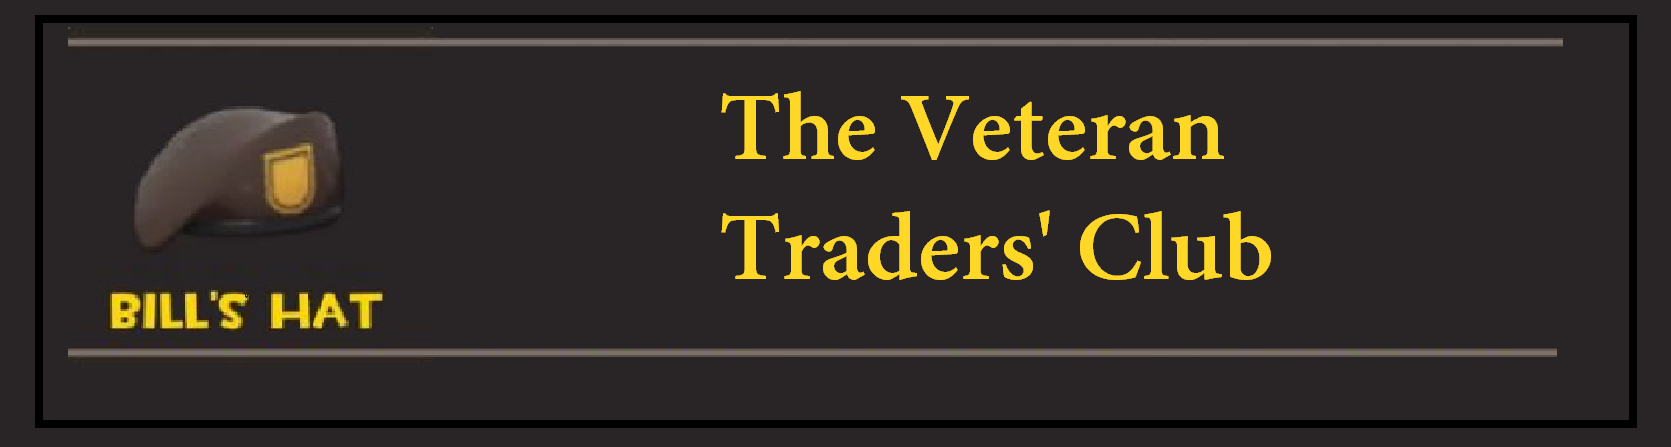 Veteran Traders Club